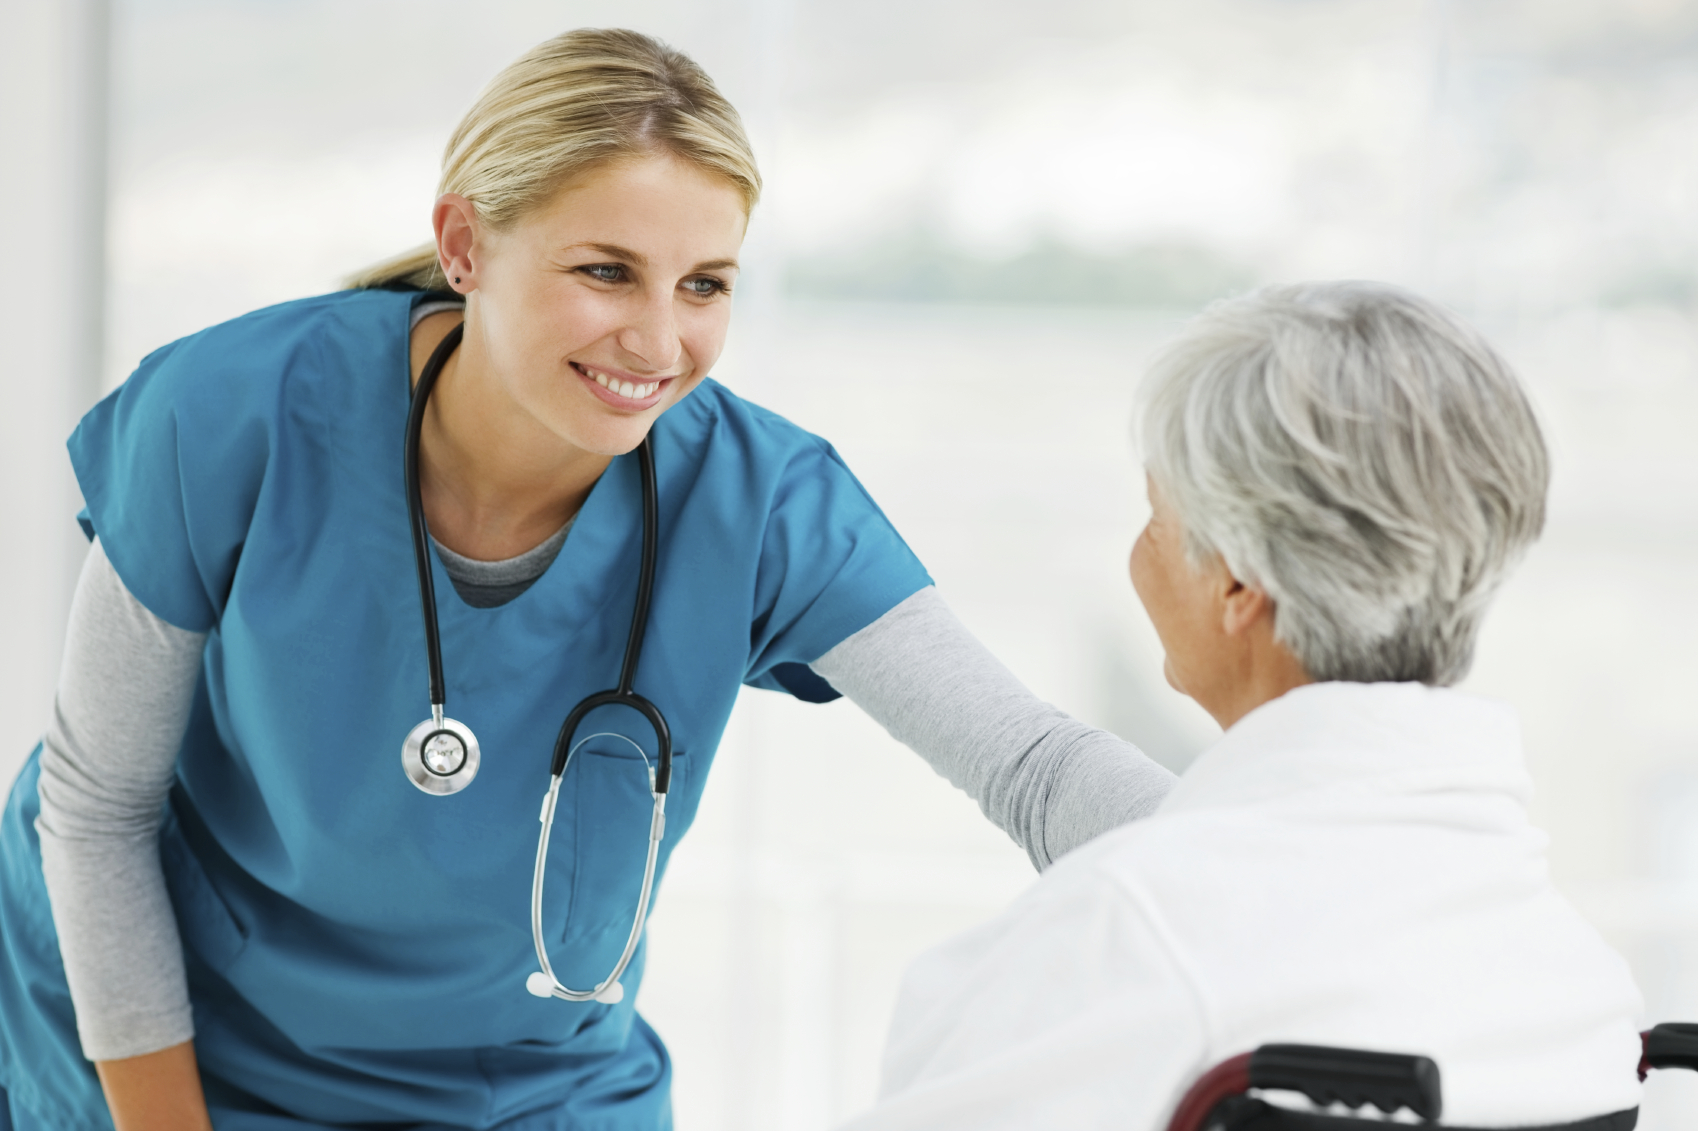 nurse to patient ratio laws in nevada should be set in place for the long term care setting The nursing assistant training program model curriculum was designed to provide a guide for instructors and learners on the competencies needed by nursing assistants caring for clients in a variety of settings.